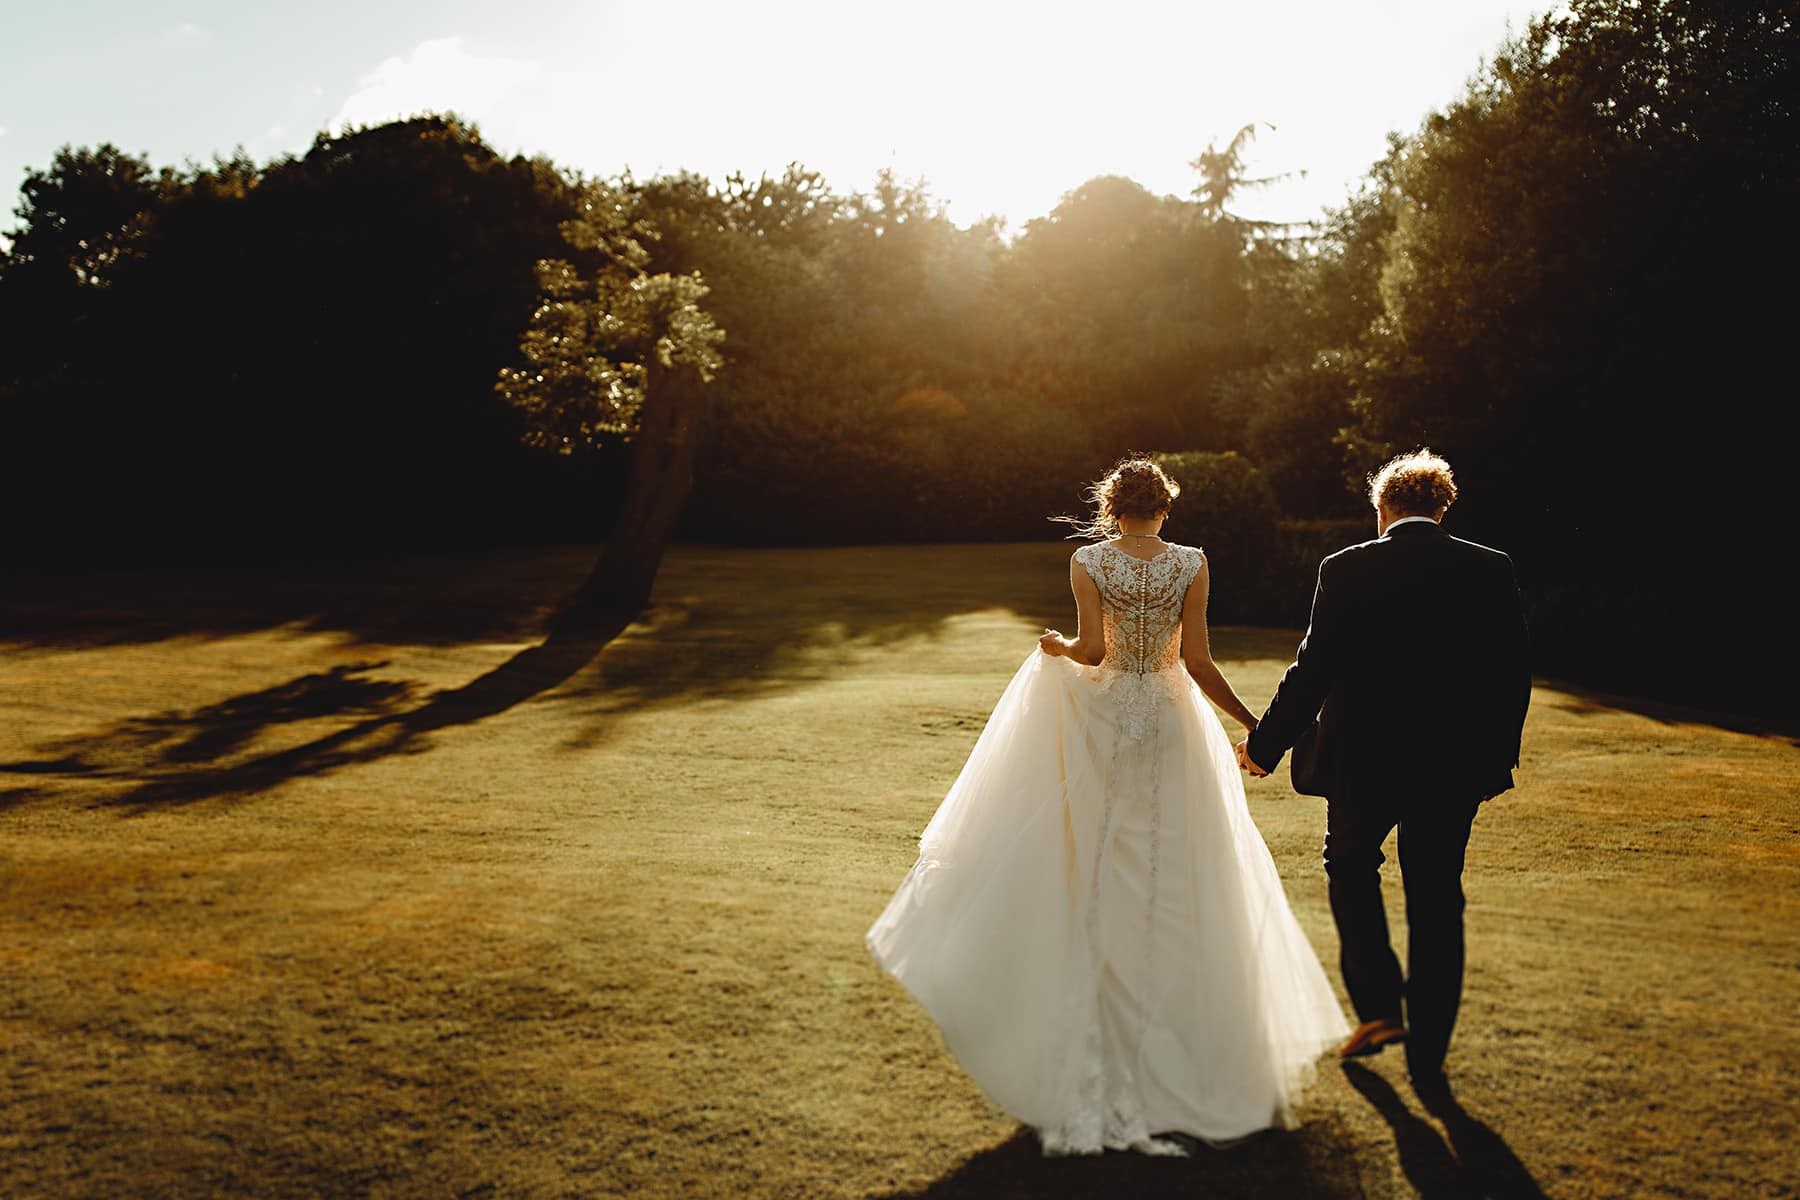 the bride and groom in the golden hour sunlight at Newton House Barns on their wedding day in Derbyshire